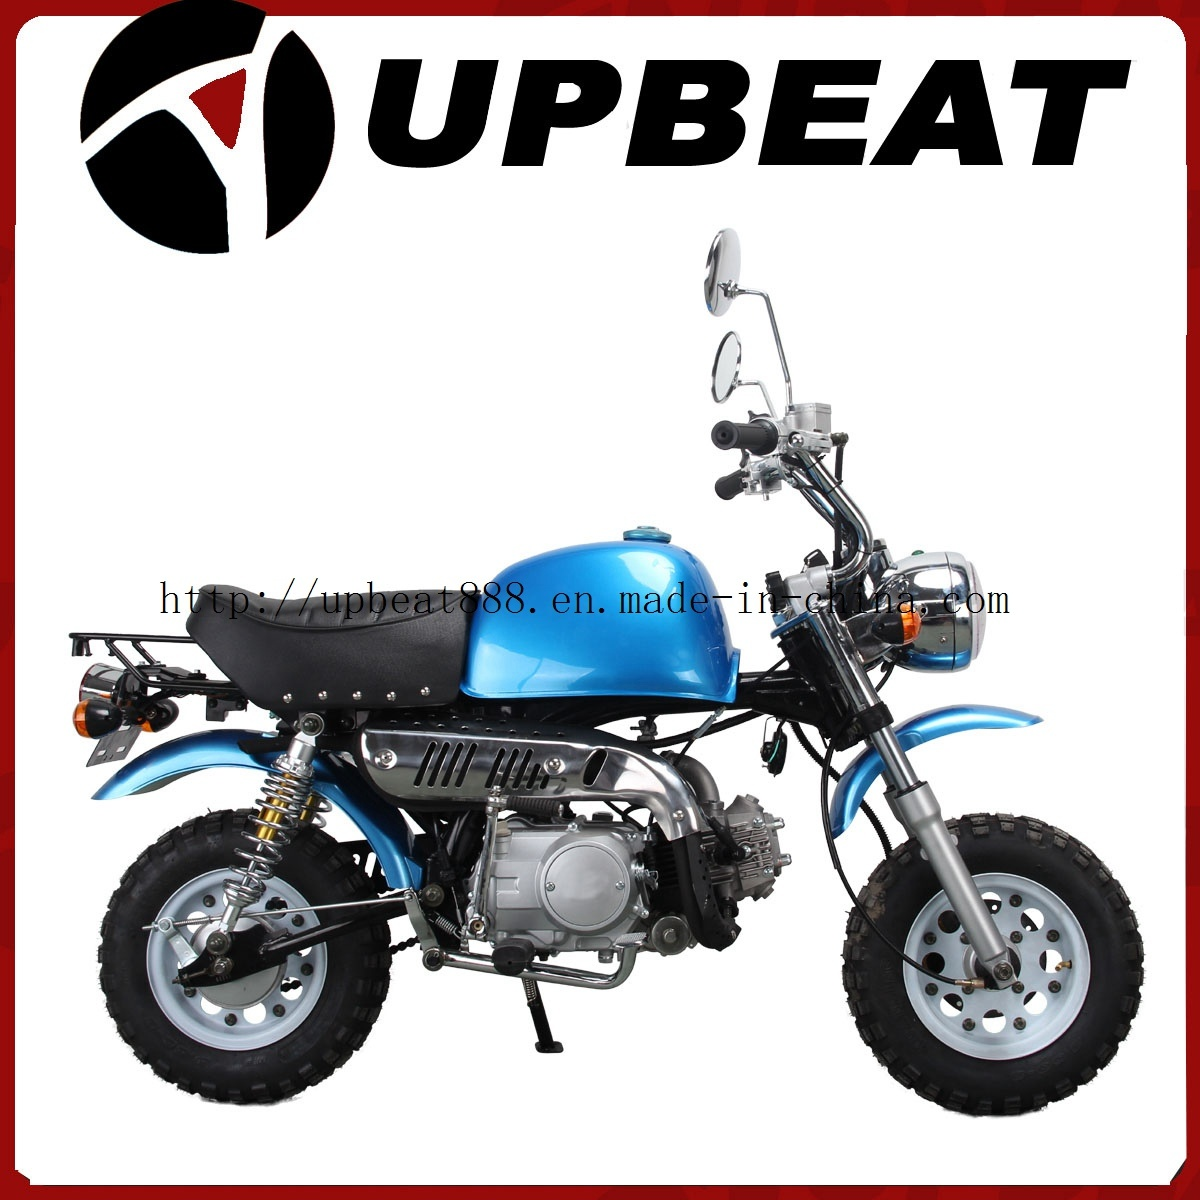 hight resolution of china upbeat motorcycle 110cc monkey bike 110cc gorilla bike blue china monkey bike gorilla bike